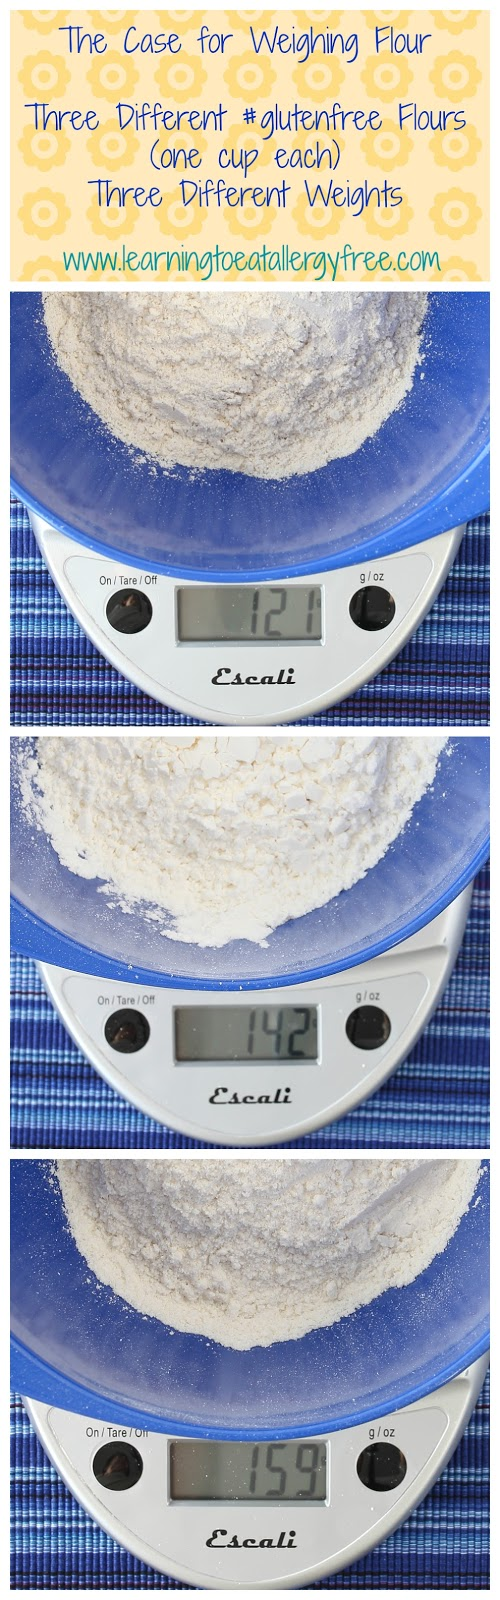 One cup each of three different gluten-free flour blends, three different weights. Learn the best way to measure gluten-free flour at Learning to Eat Allergy-Free